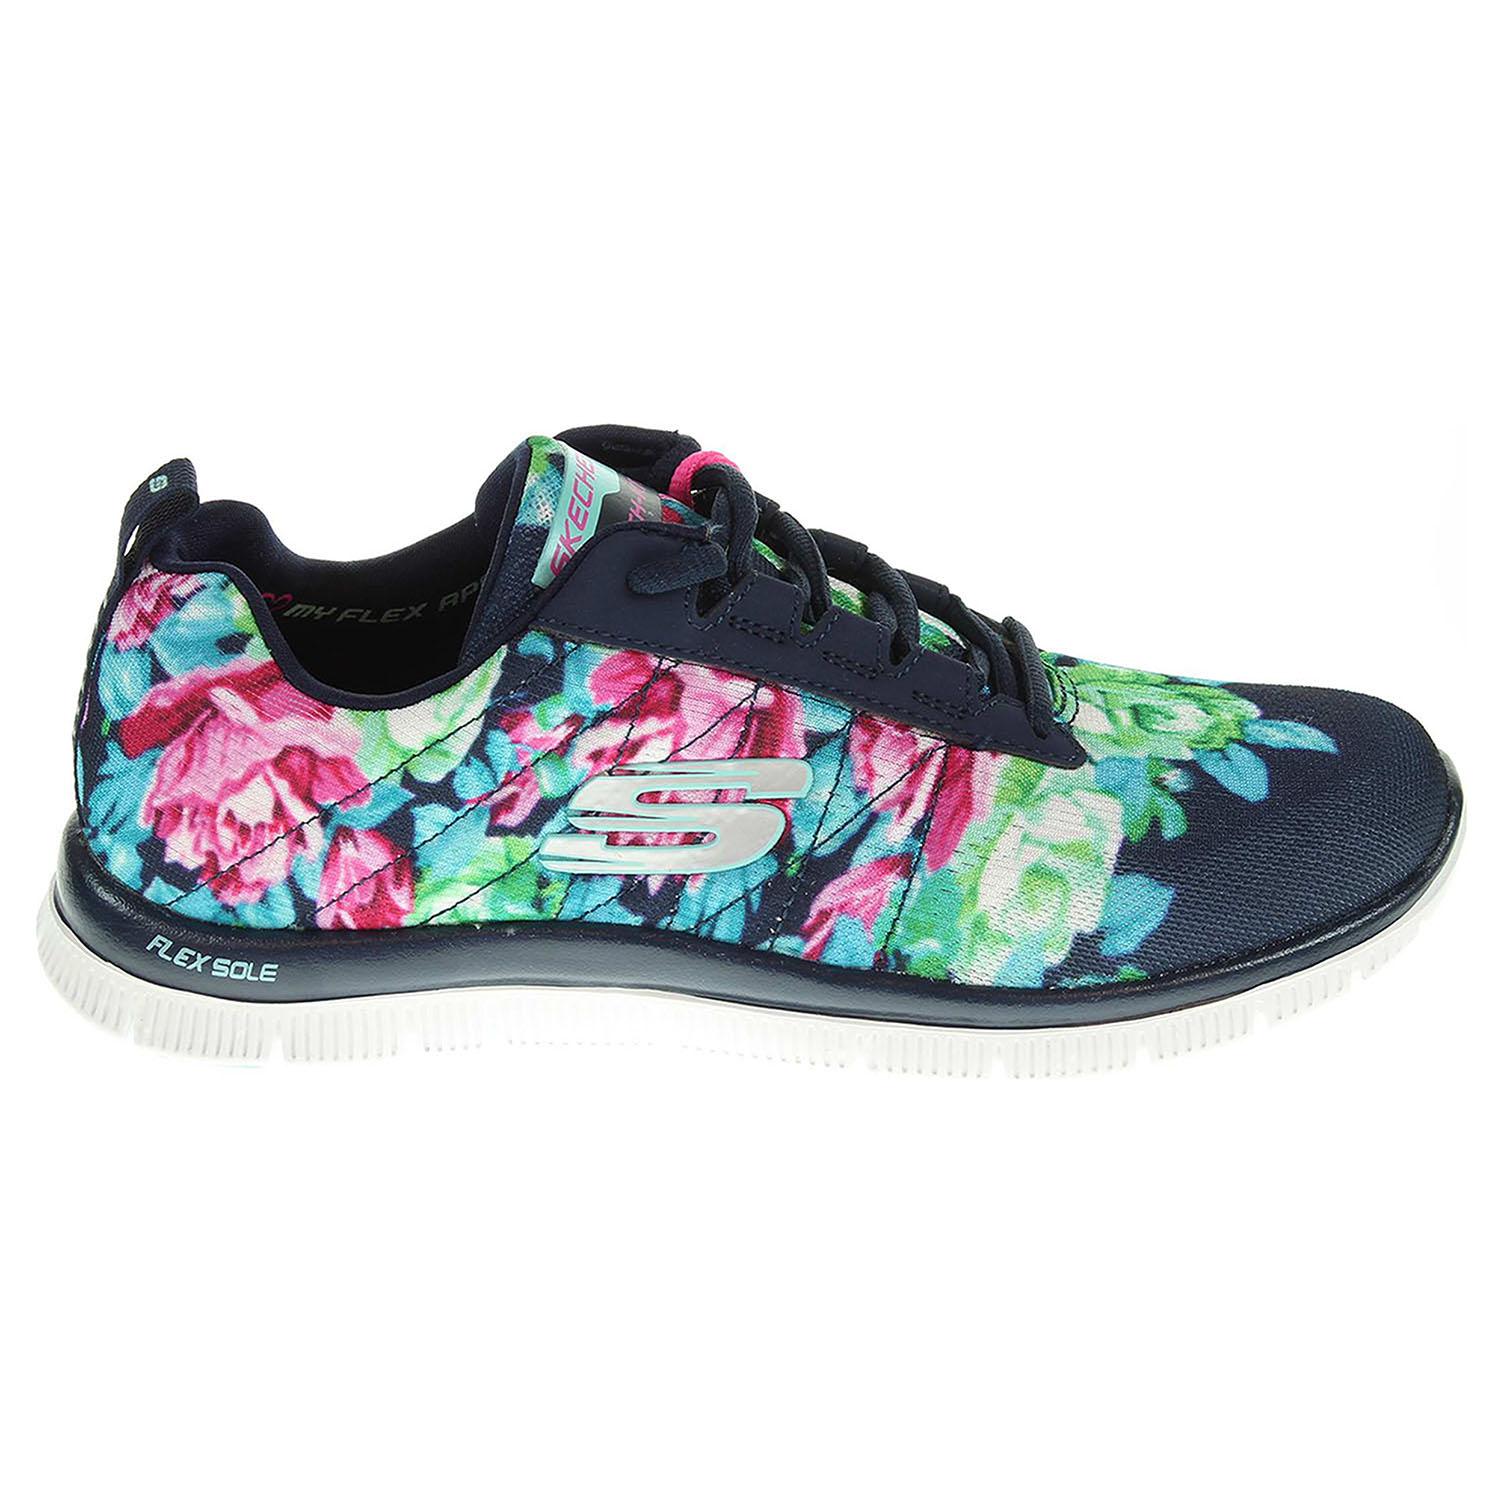 Skechers Wildflowers navy-multi 40